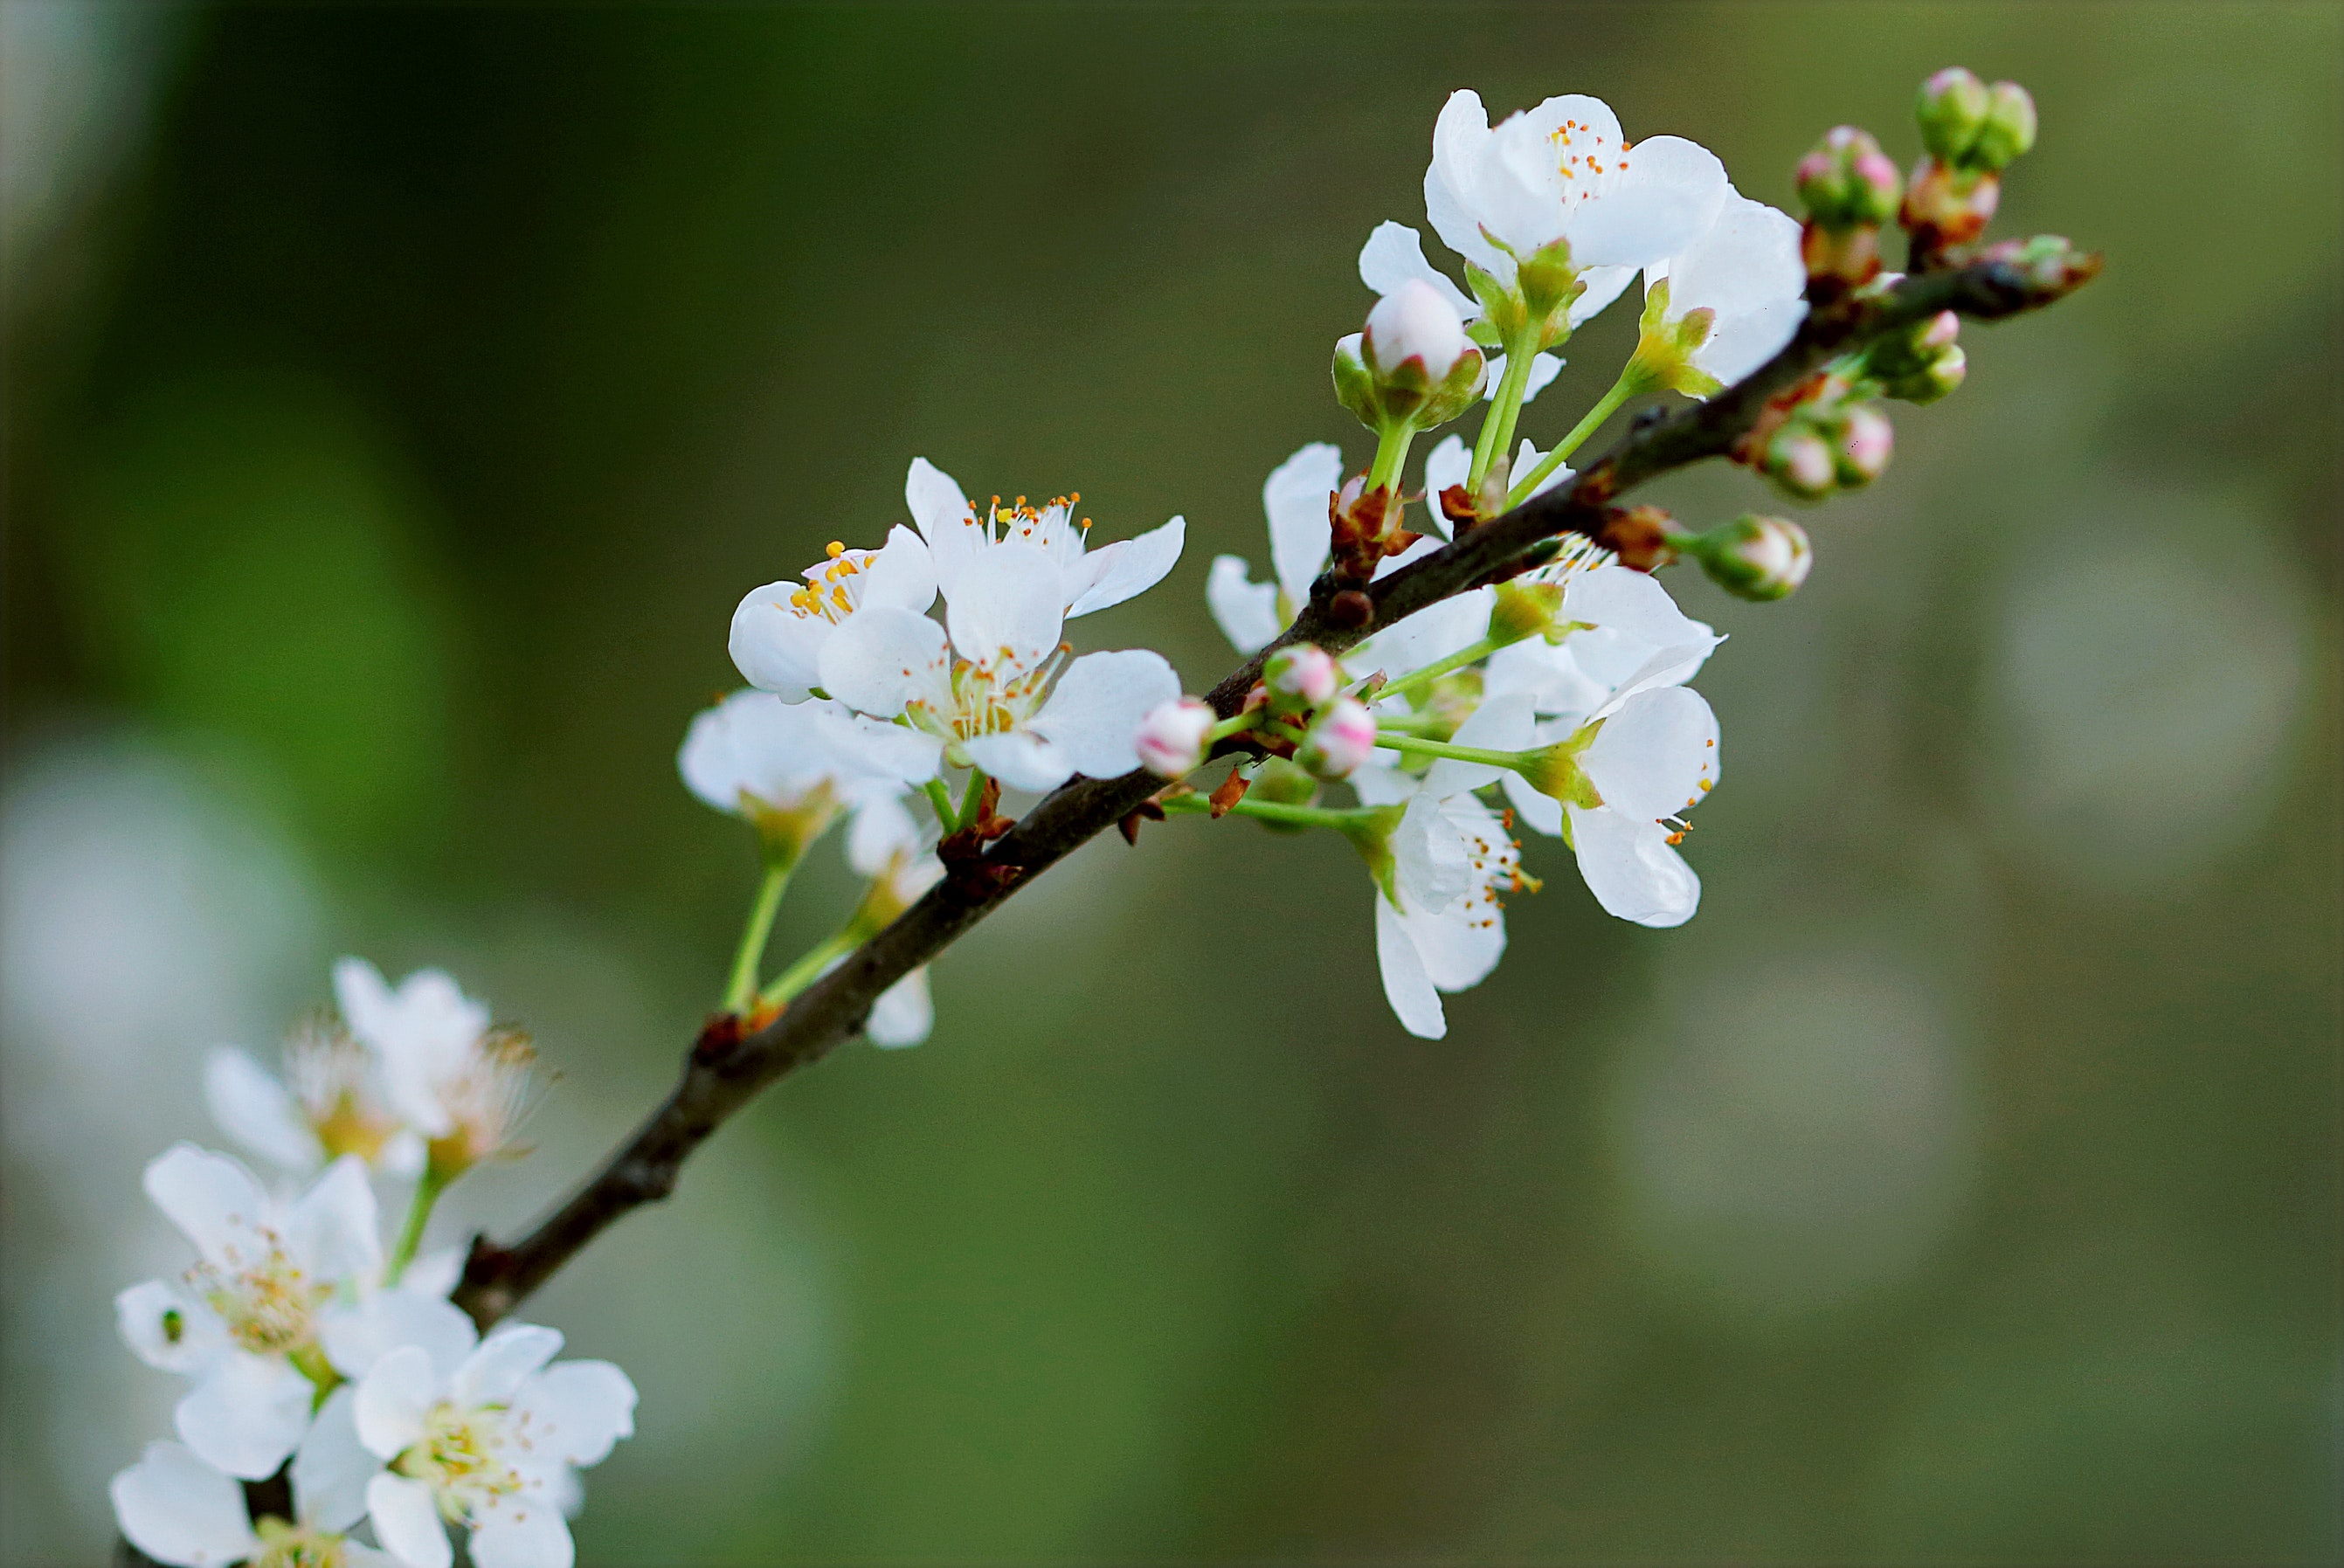 Selective Focus Photography of White Cherry Blossoms, Beautiful, Flowers, Stem, Petals, HQ Photo